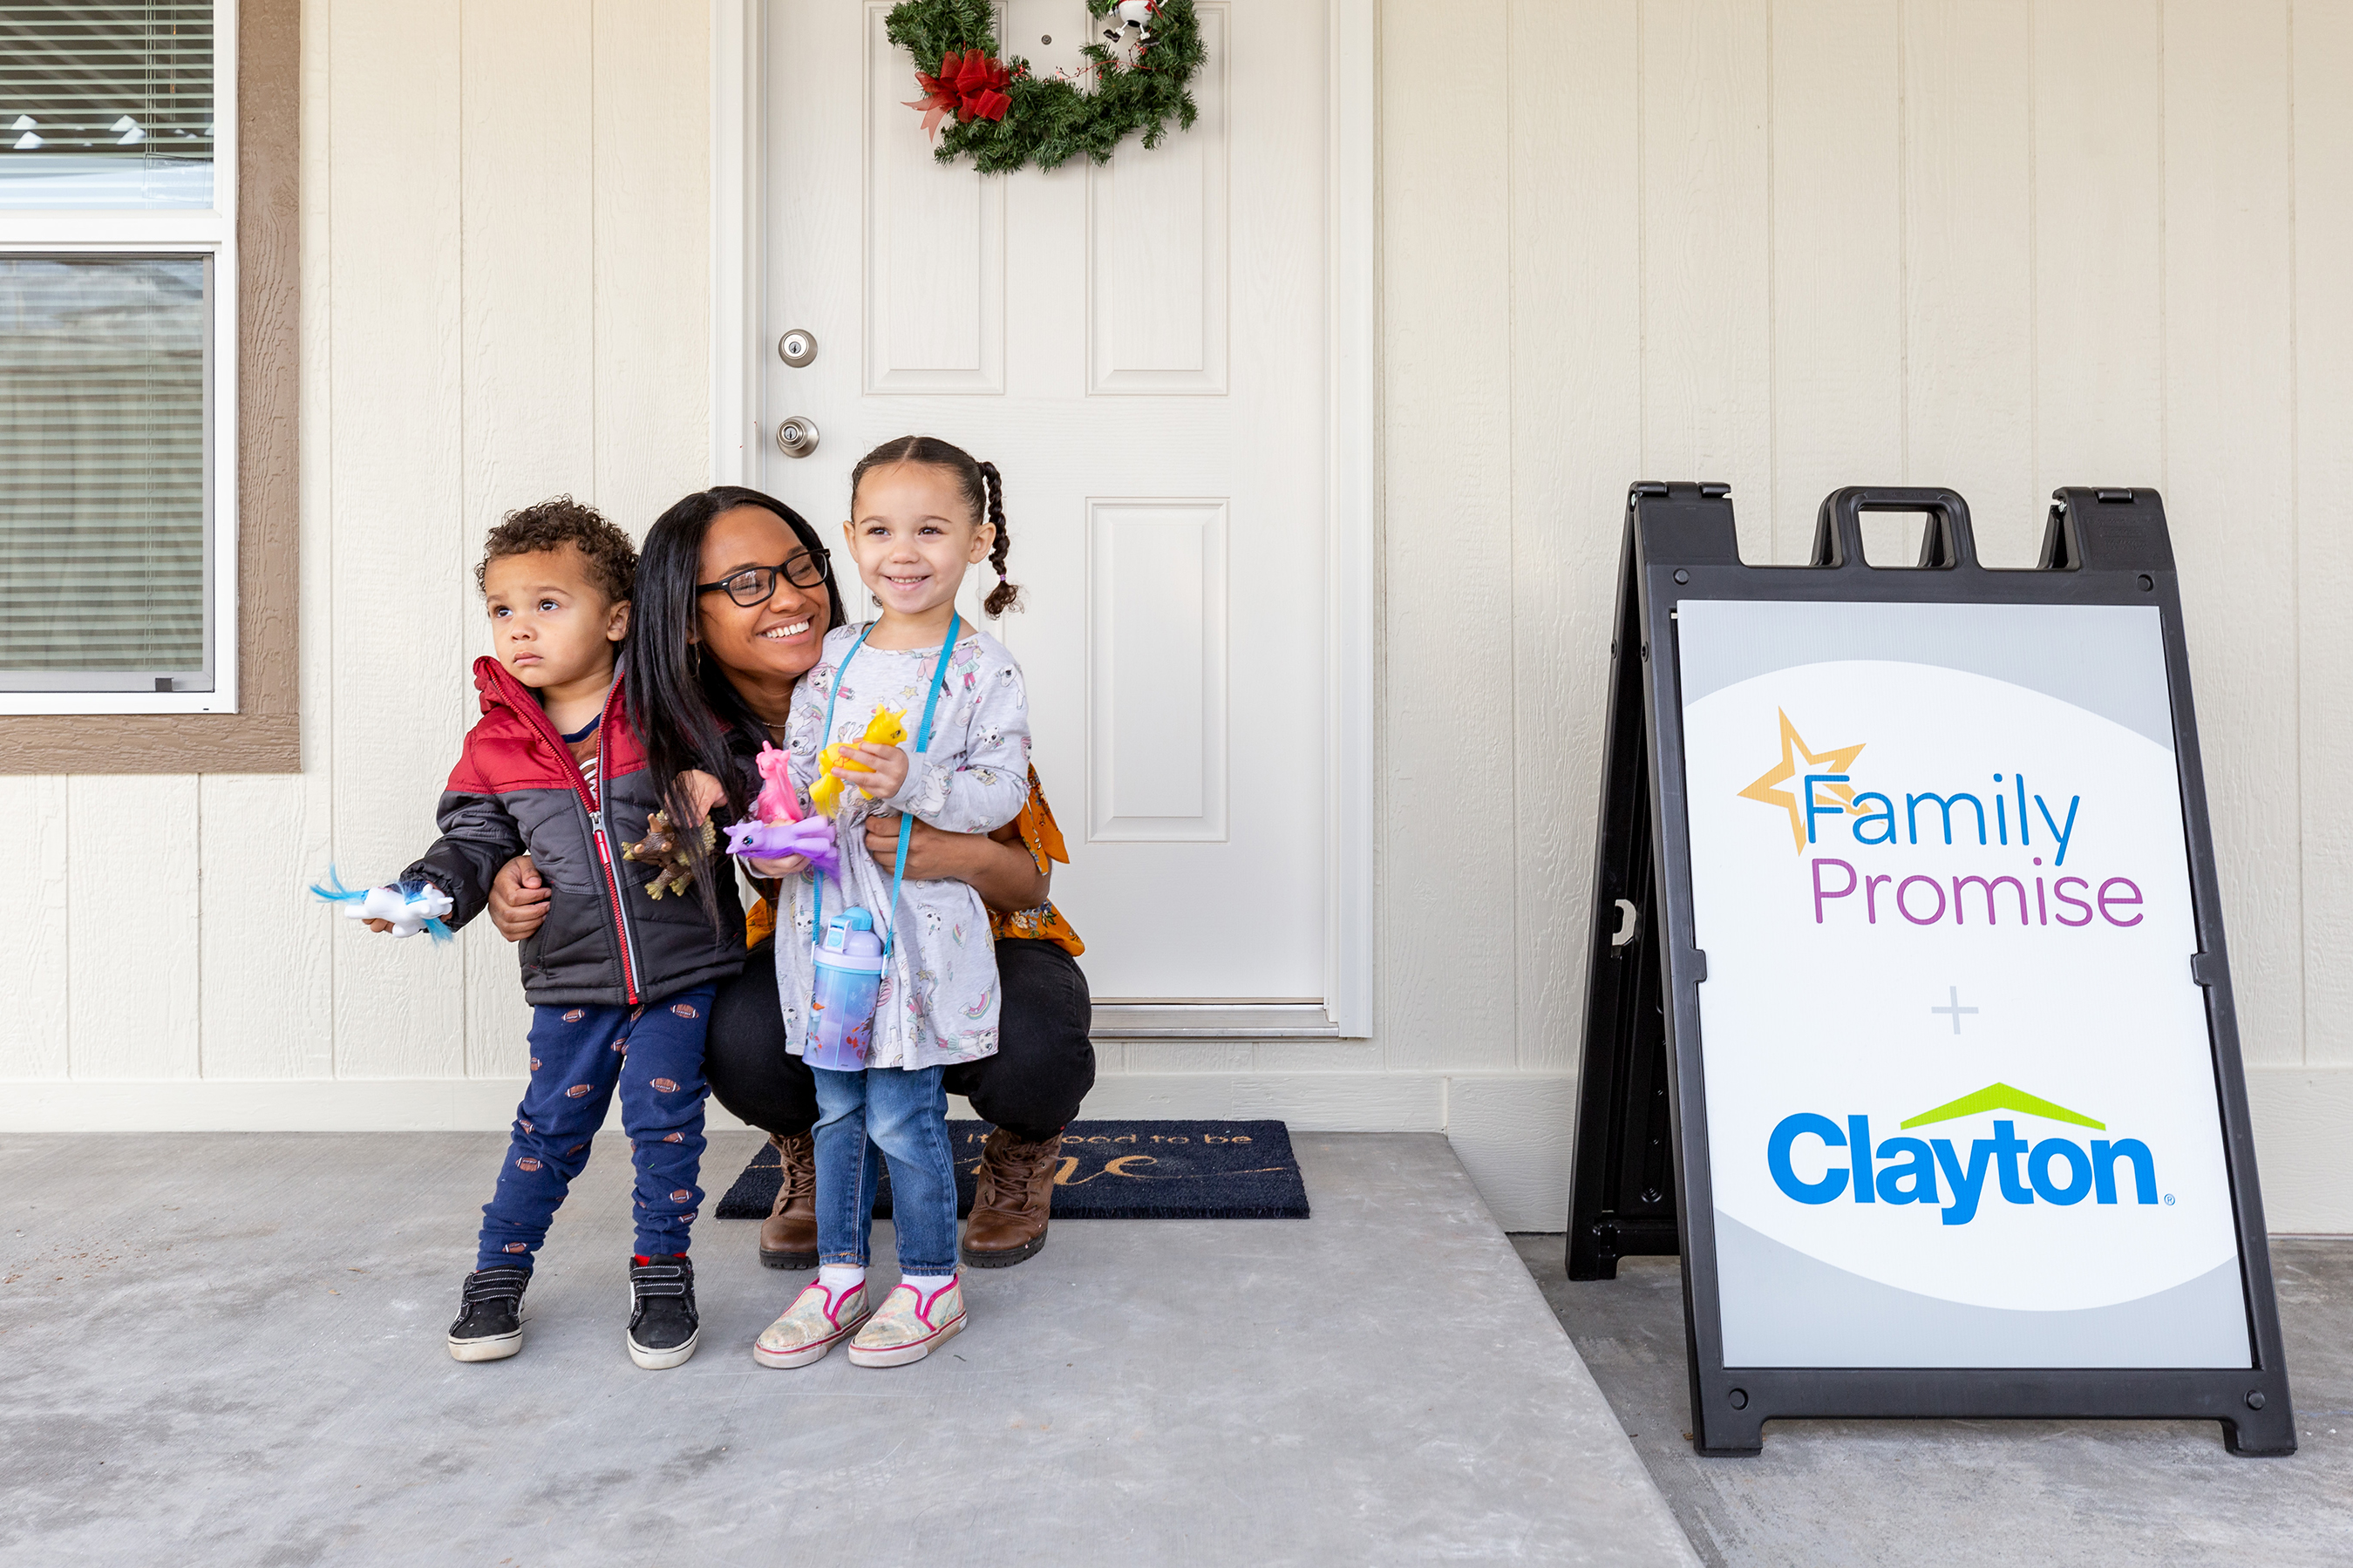 The Clayton and Family Promise relationship is an example of Clayton's commitment to build a better tomorrow. Kameron and her family received one of the 5 home donations this year through the partnership.